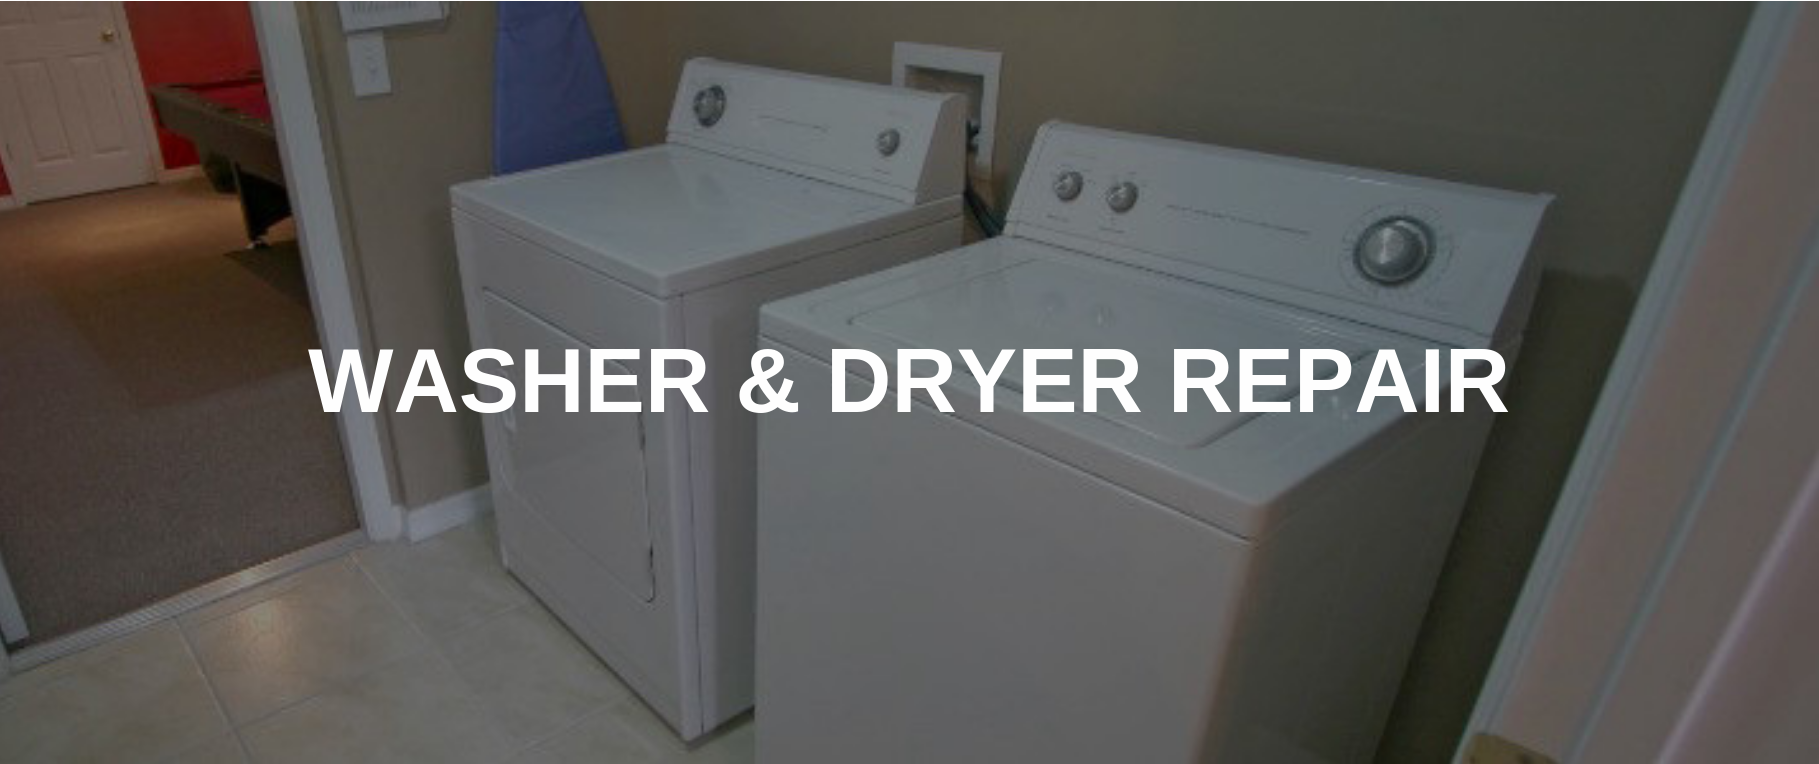 washing machine repair forest hills